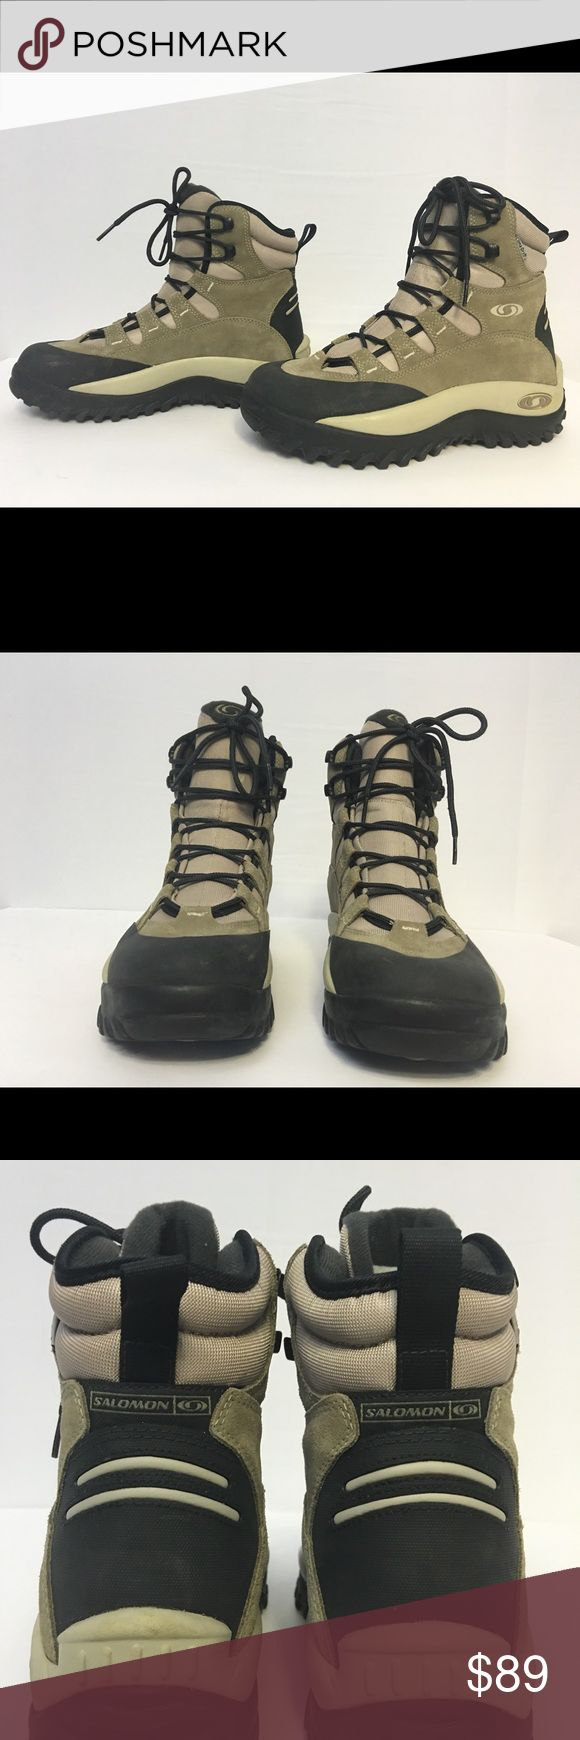 Salomon Hiking Boots Never worn, Salomon Hiking Boots with Contagrip technology for optimal grip.  Note:  Boots never worn, one scuff as shown in pic #7 Salomon Shoes